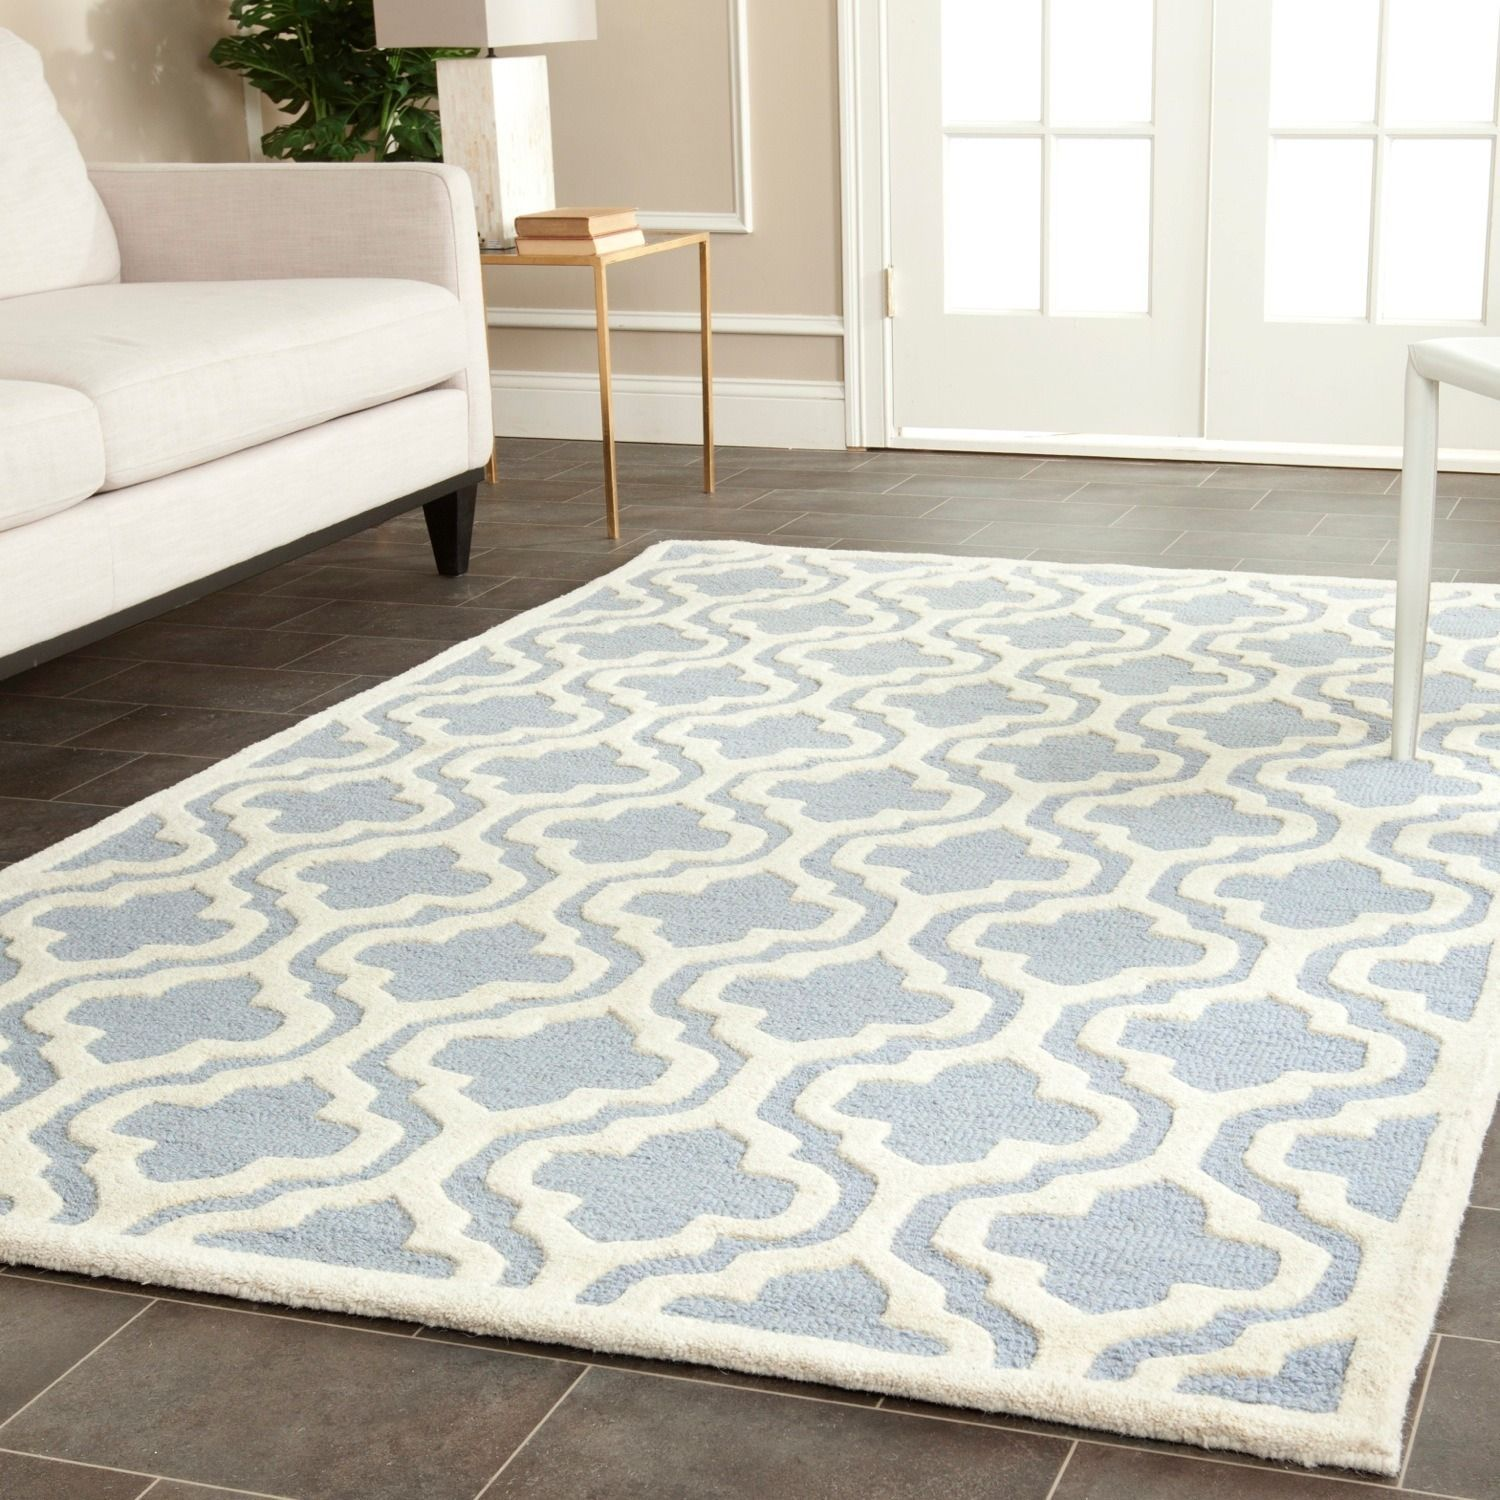 Safavieh Handmade Moroccan Cambridge Light Blue Ivory Wool Area Rug X Ping Great Deals On Rugs